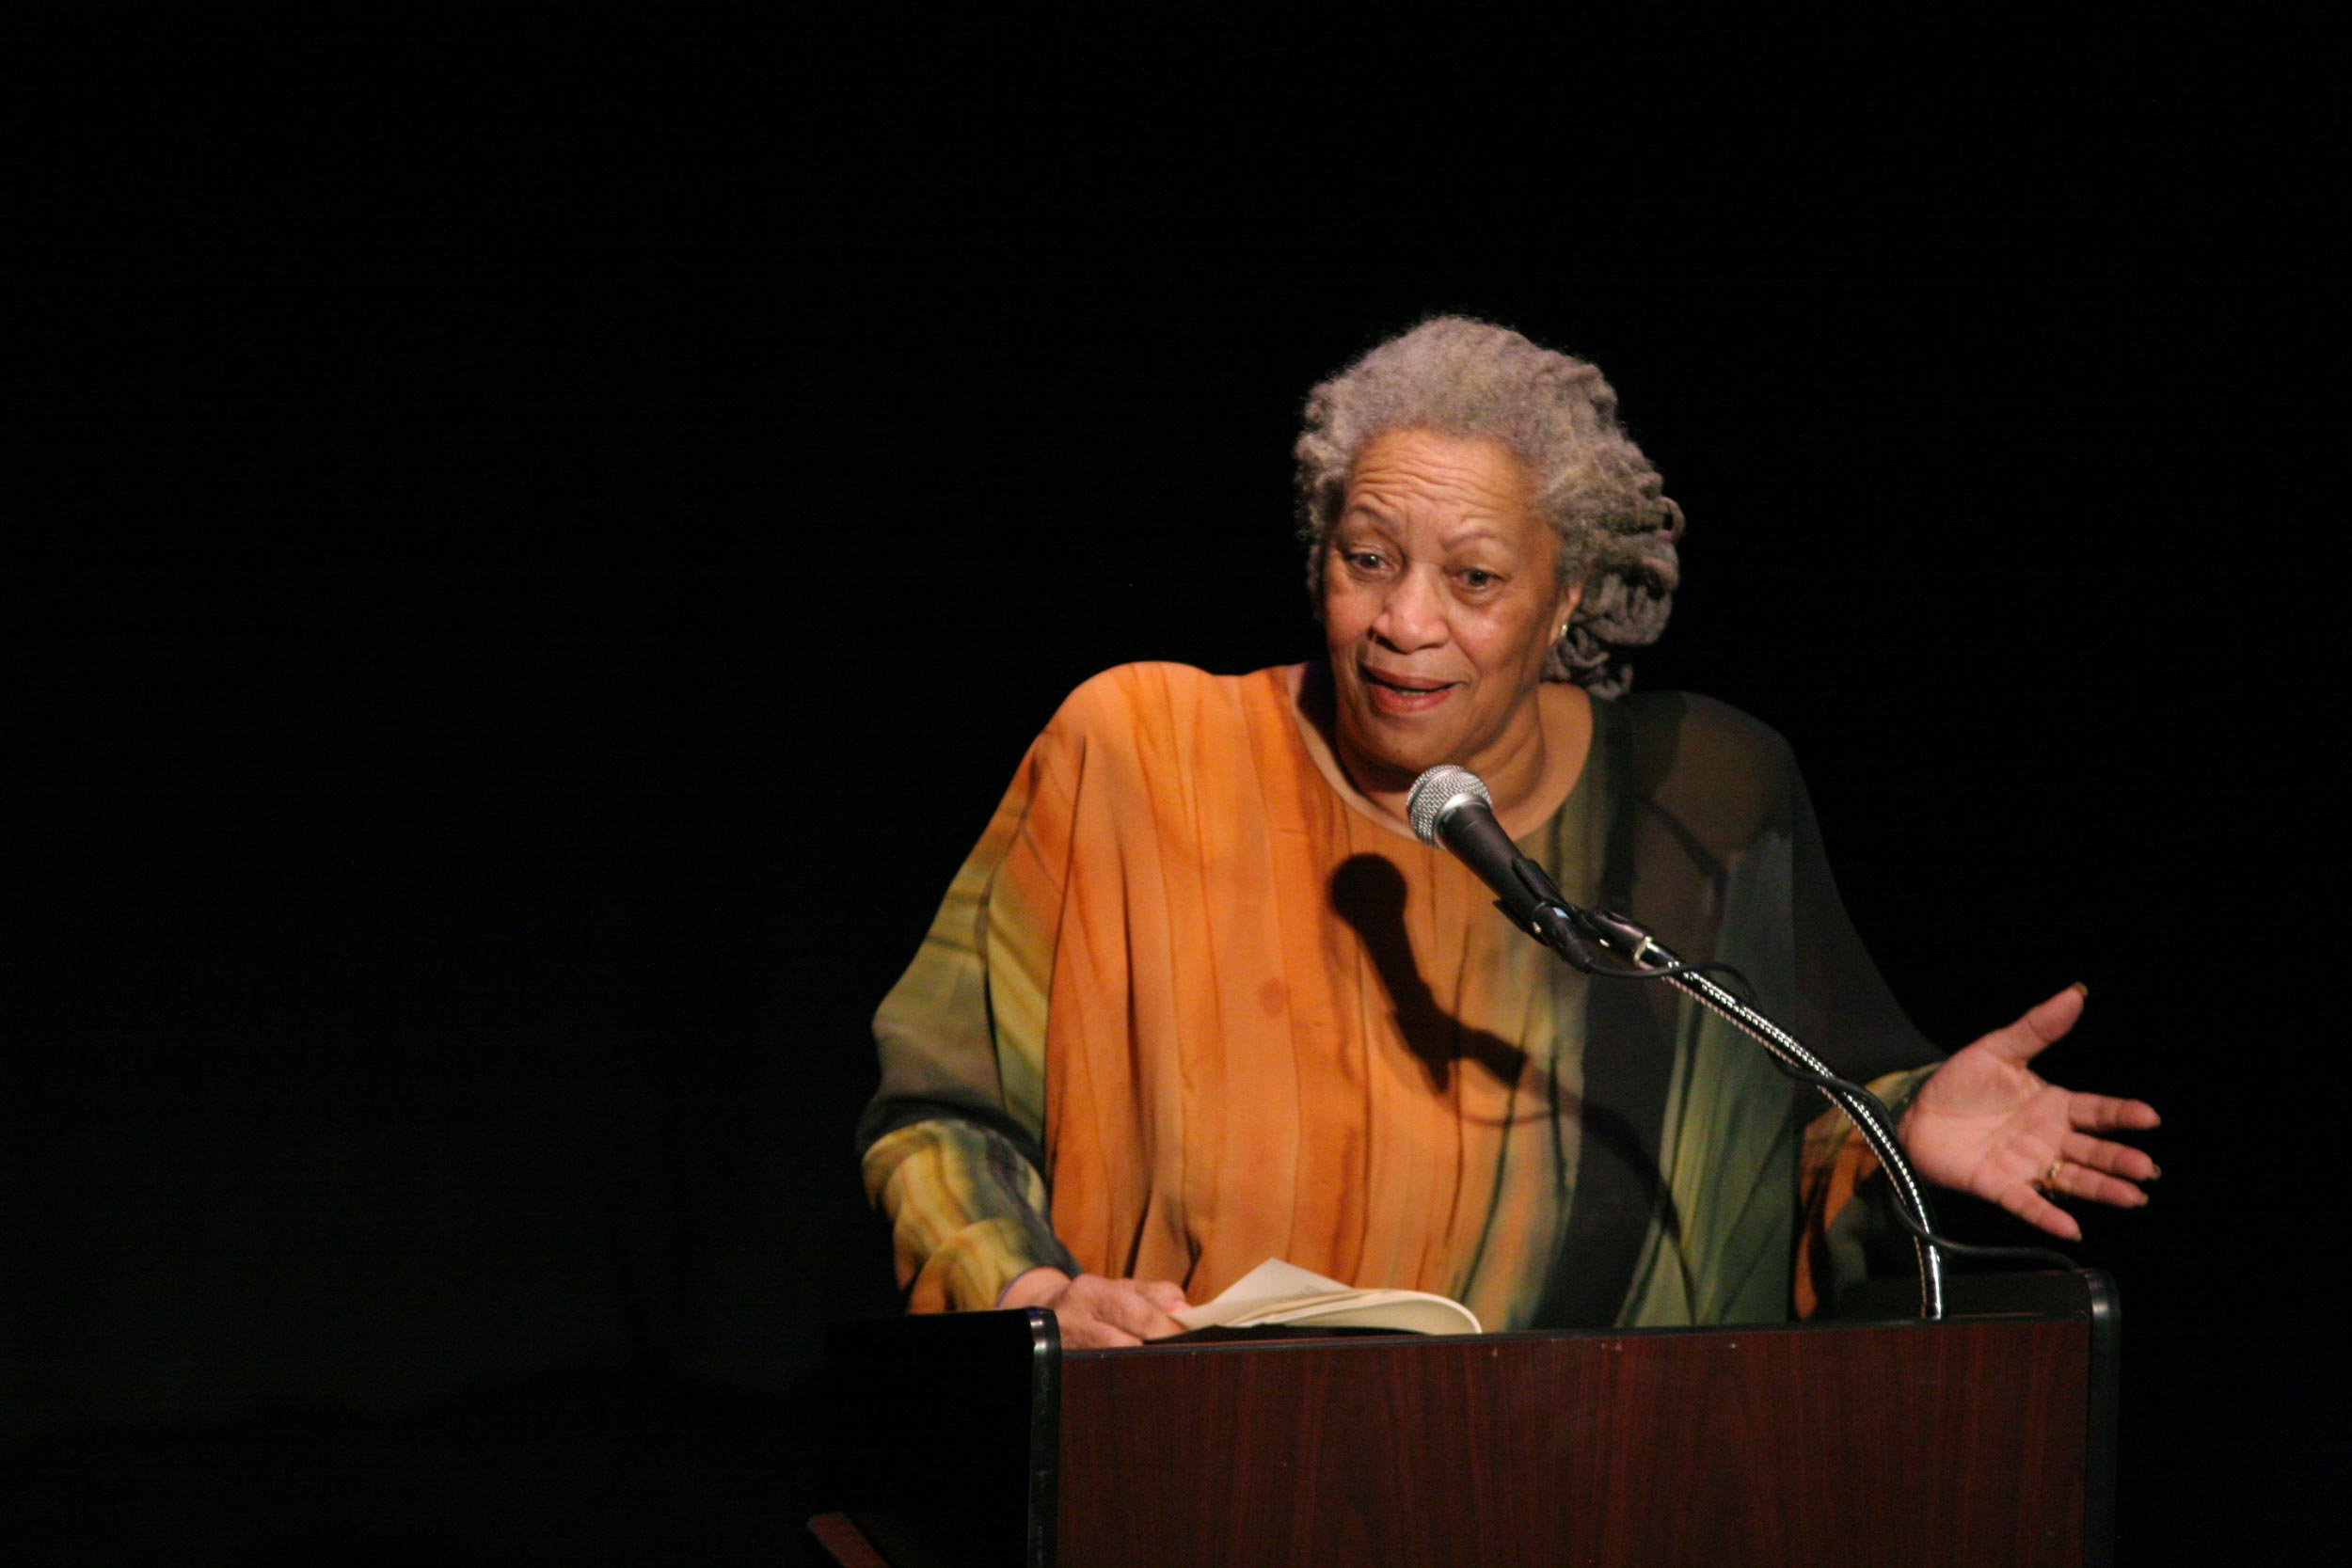 Following award-winning author Toni Morrison's death on Monday, English professor Deborah McDowell said Morrison (above, in 2008) was one of the most politically astute and philosophical writers this country has known.